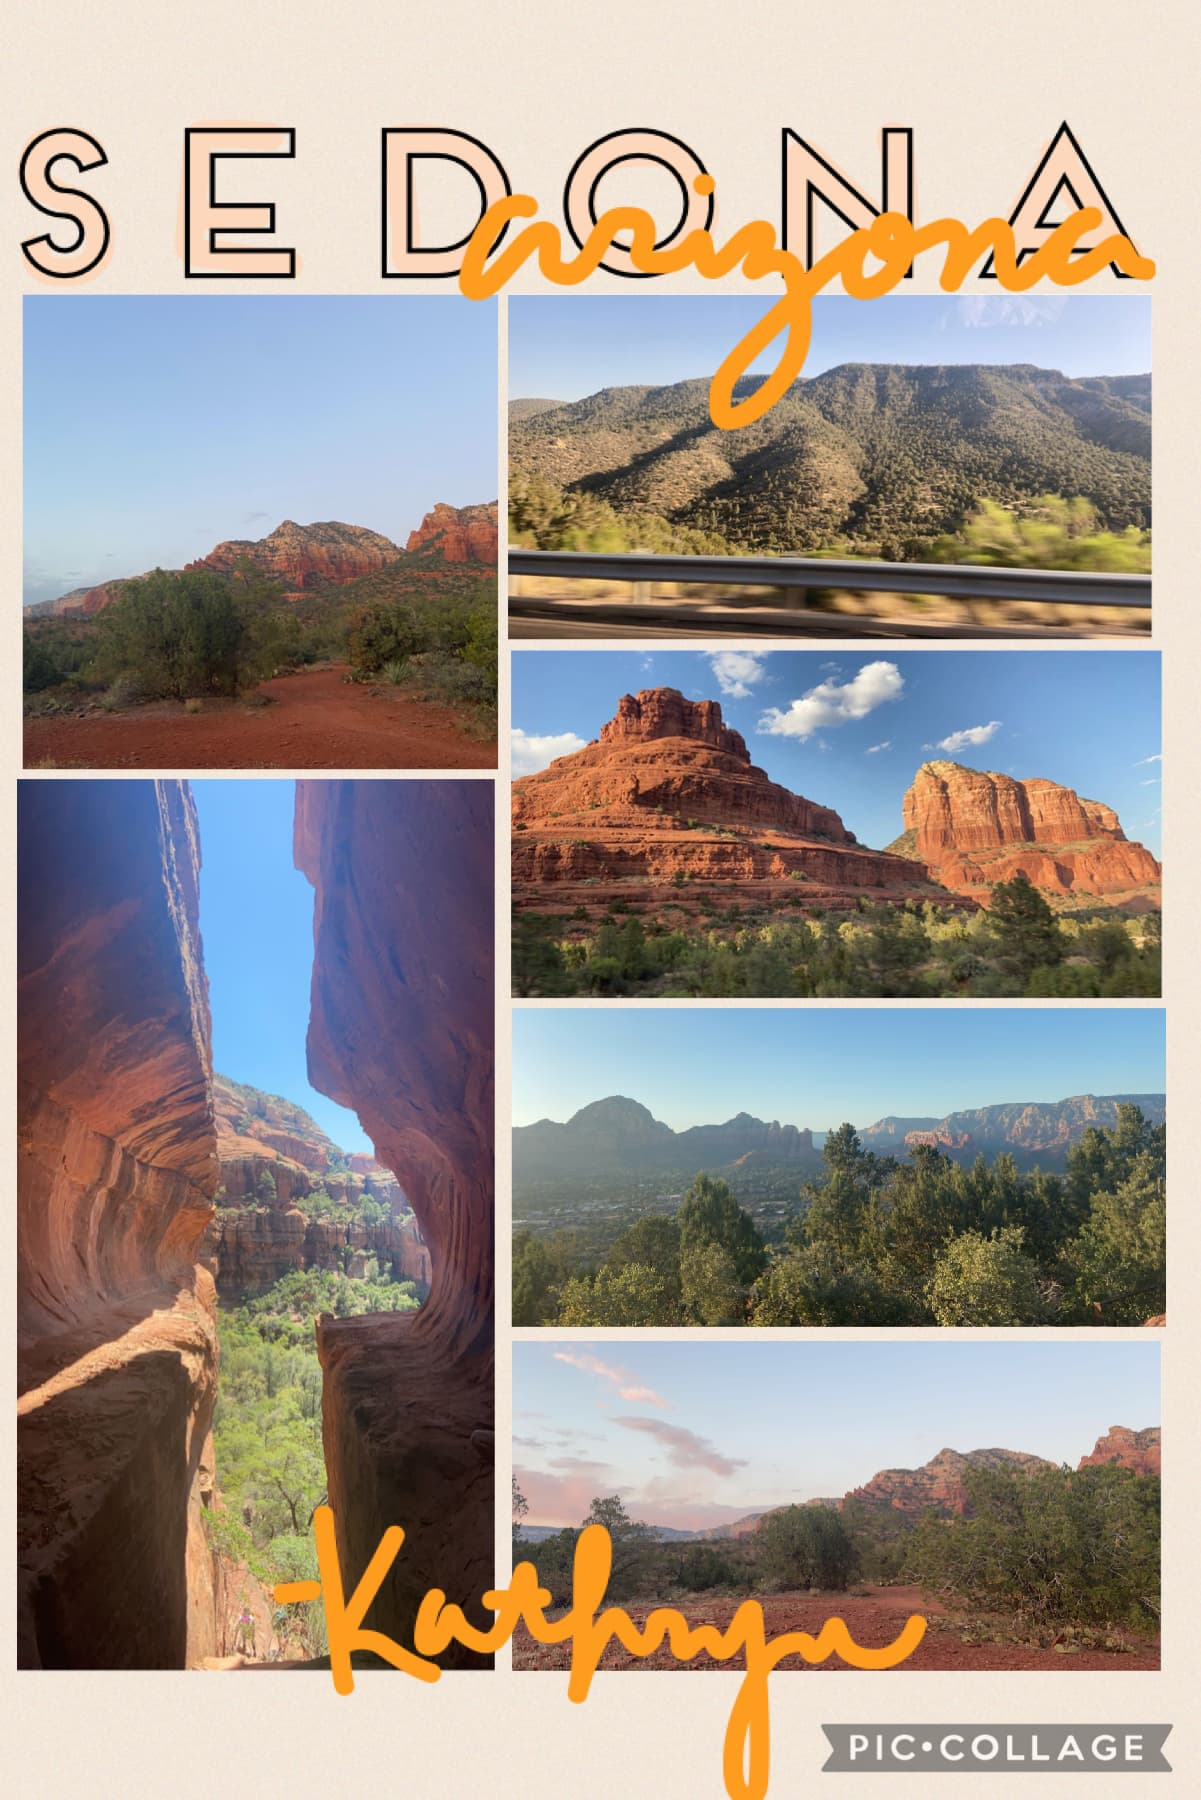 I've been pretty nonexistent around here lately, so I thought I'd give you guys a little update: just got back from an amazing trip to Sedona here are a few of my favorite pictures 💛☺️ hopefully I'll have an edit for you soon